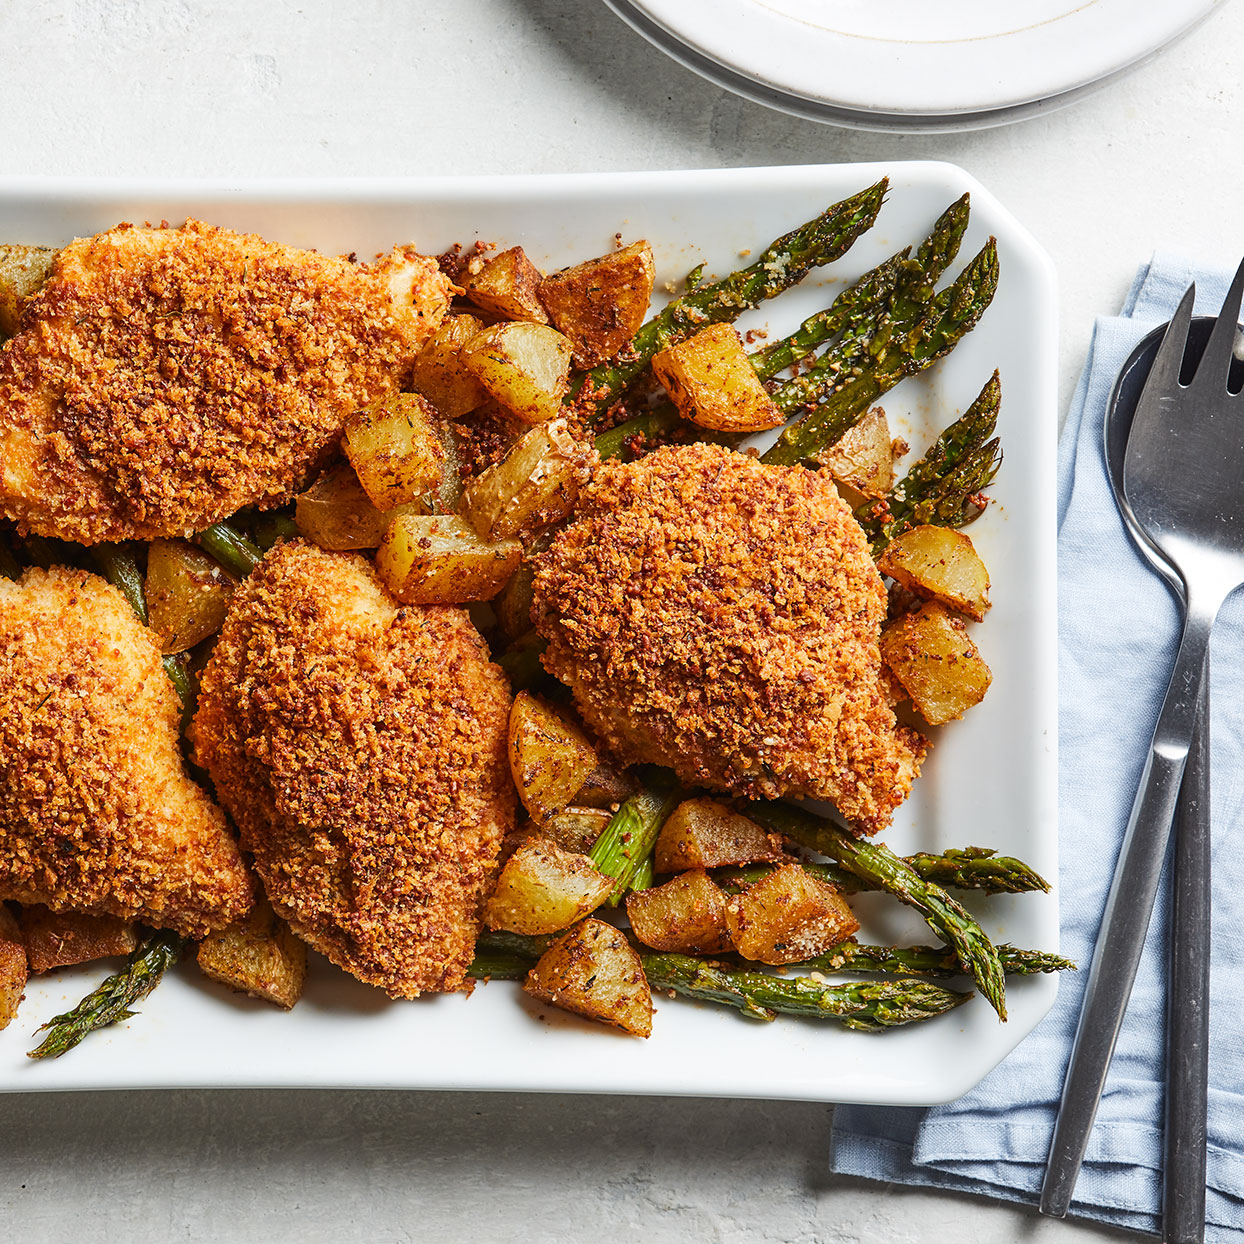 Sheet-Pan Baked Parmesan Chicken with Asparagus & Potatoes Trusted Brands